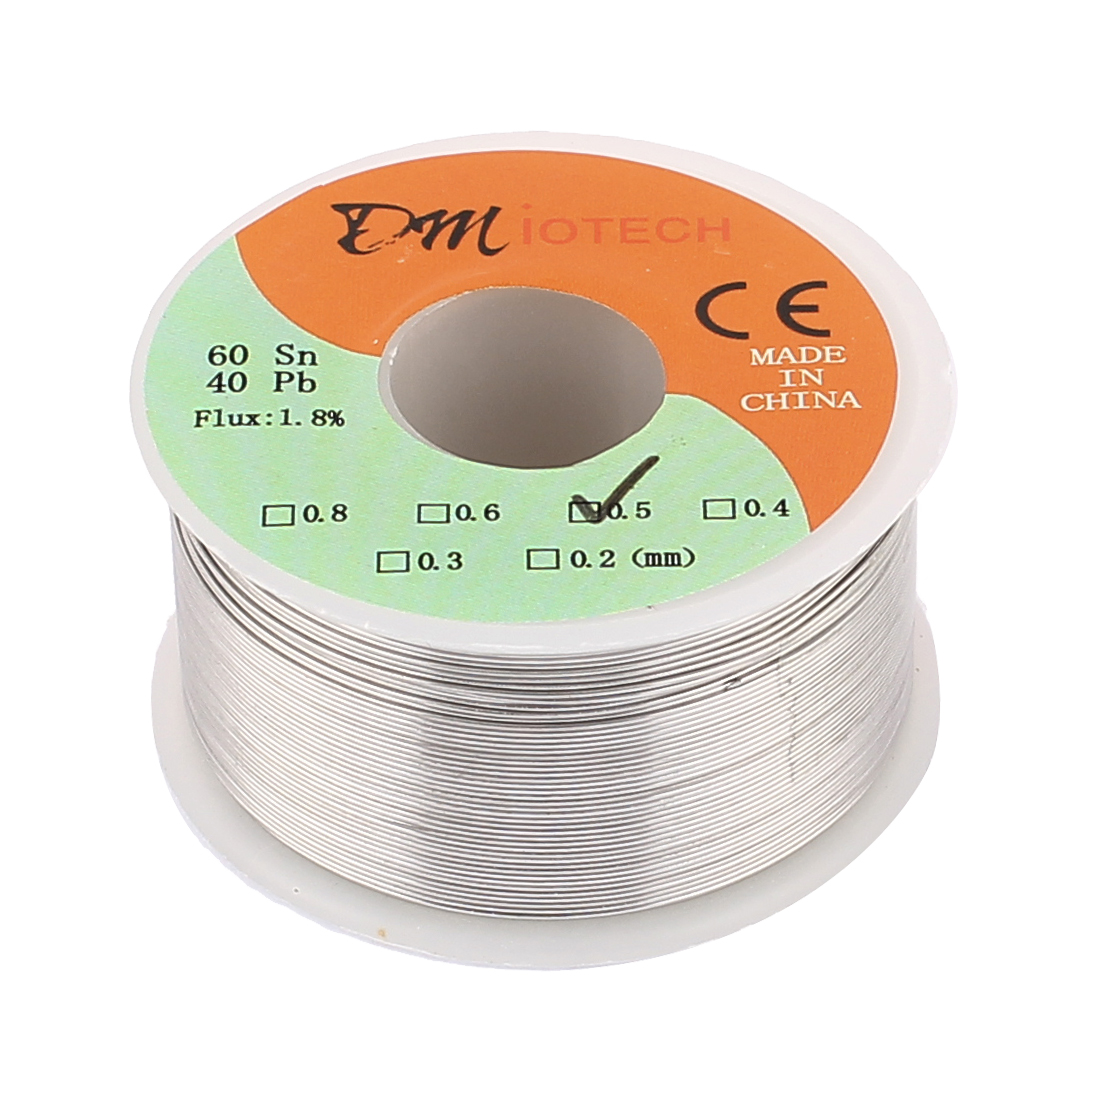 0.5mm 150G 60/40 Rosin Core Tin Lead Roll Soldering Solder Wire